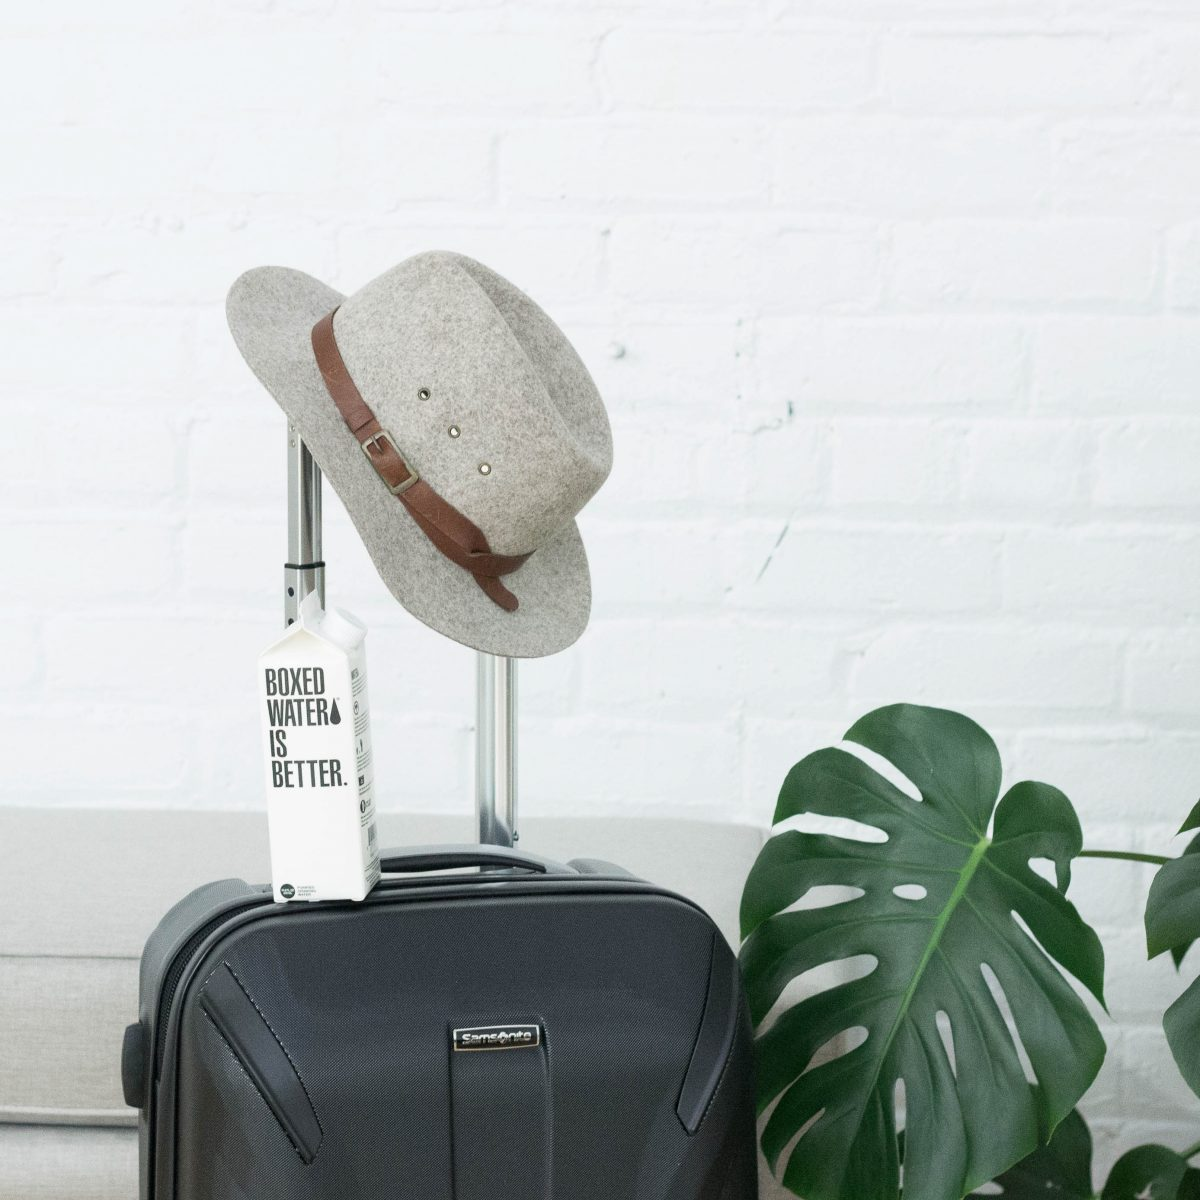 Travel luggage with a hat